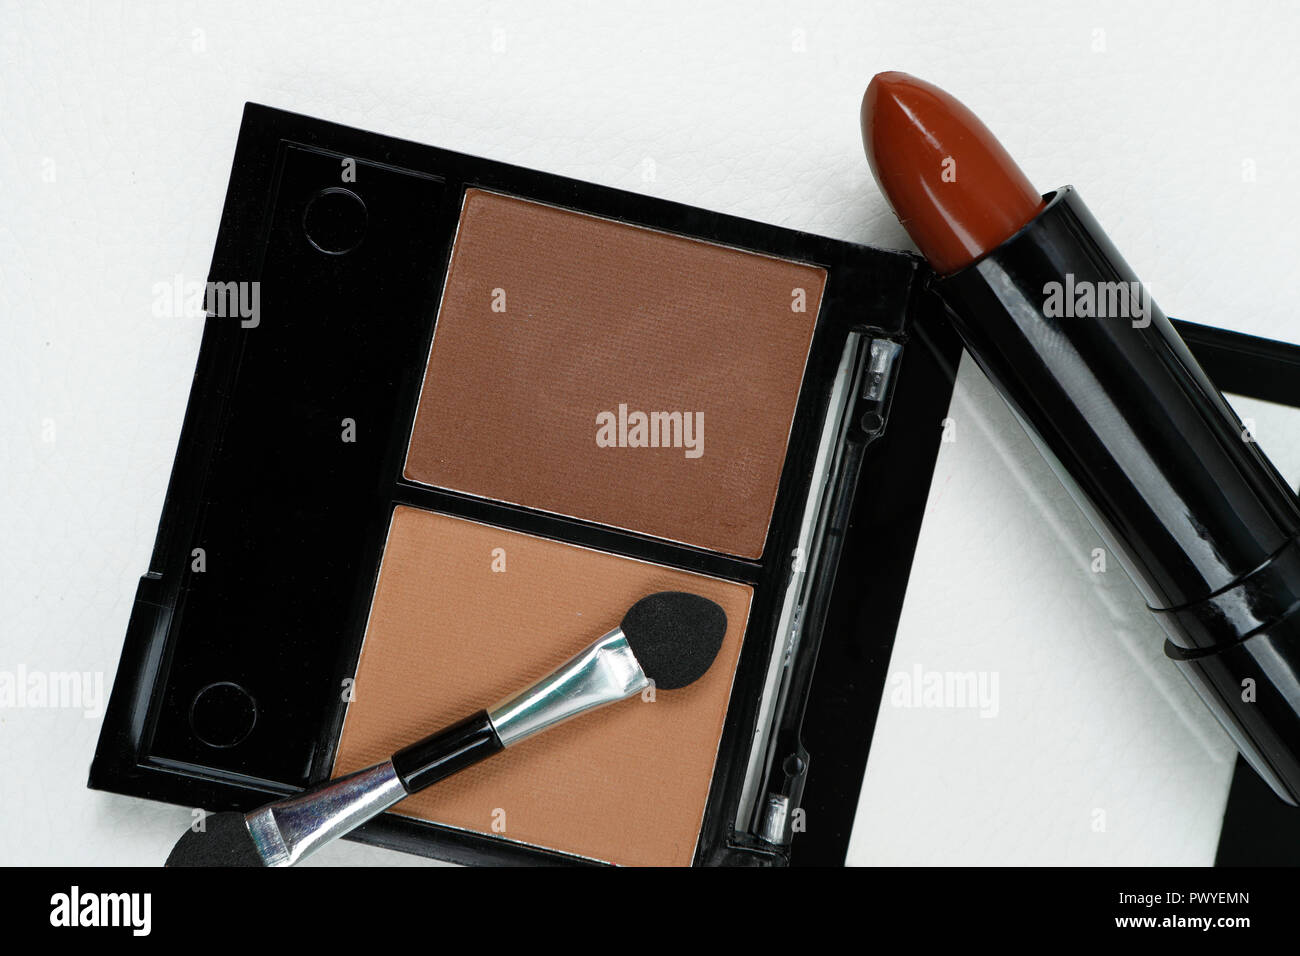 Makeup products. Still life. Beauty. Editorial illustration - Stock Image